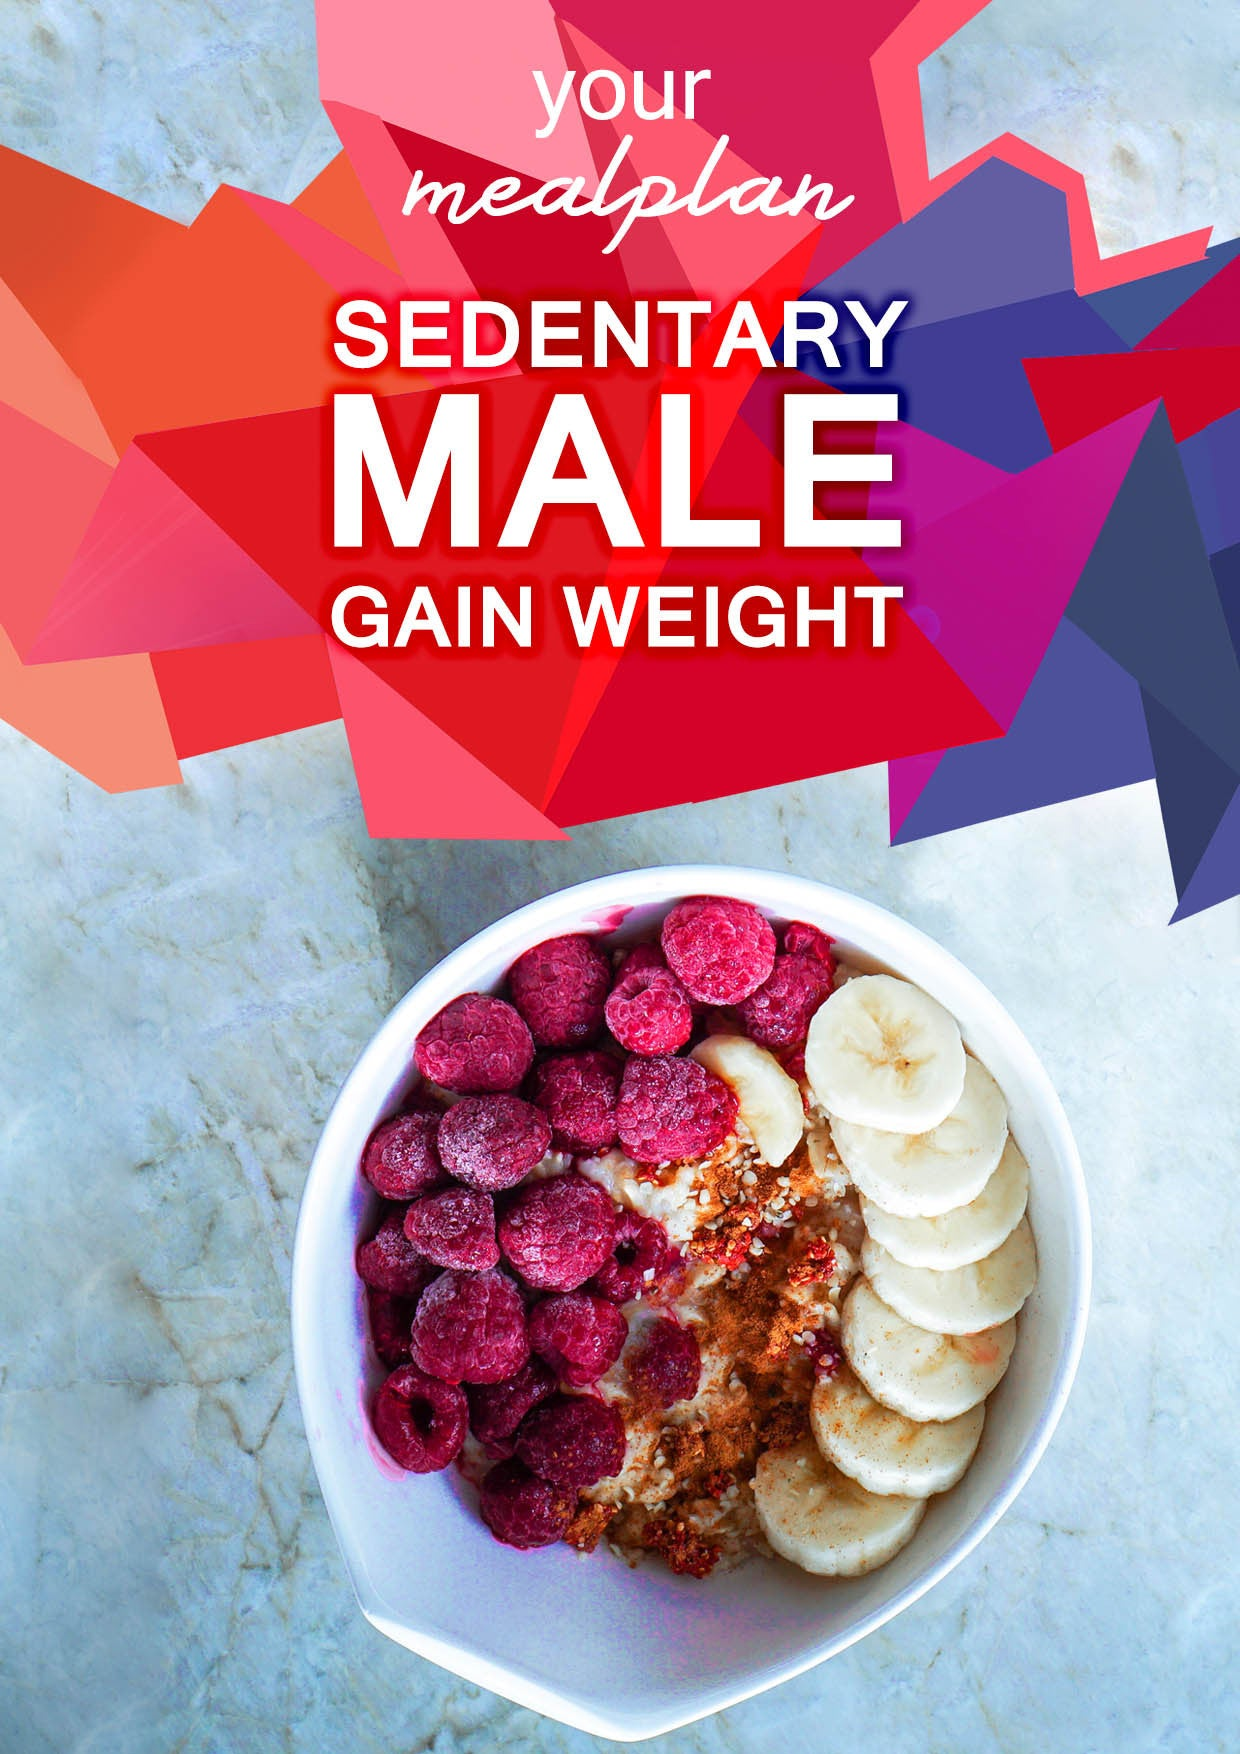 Sedentary Male - Gain Weight